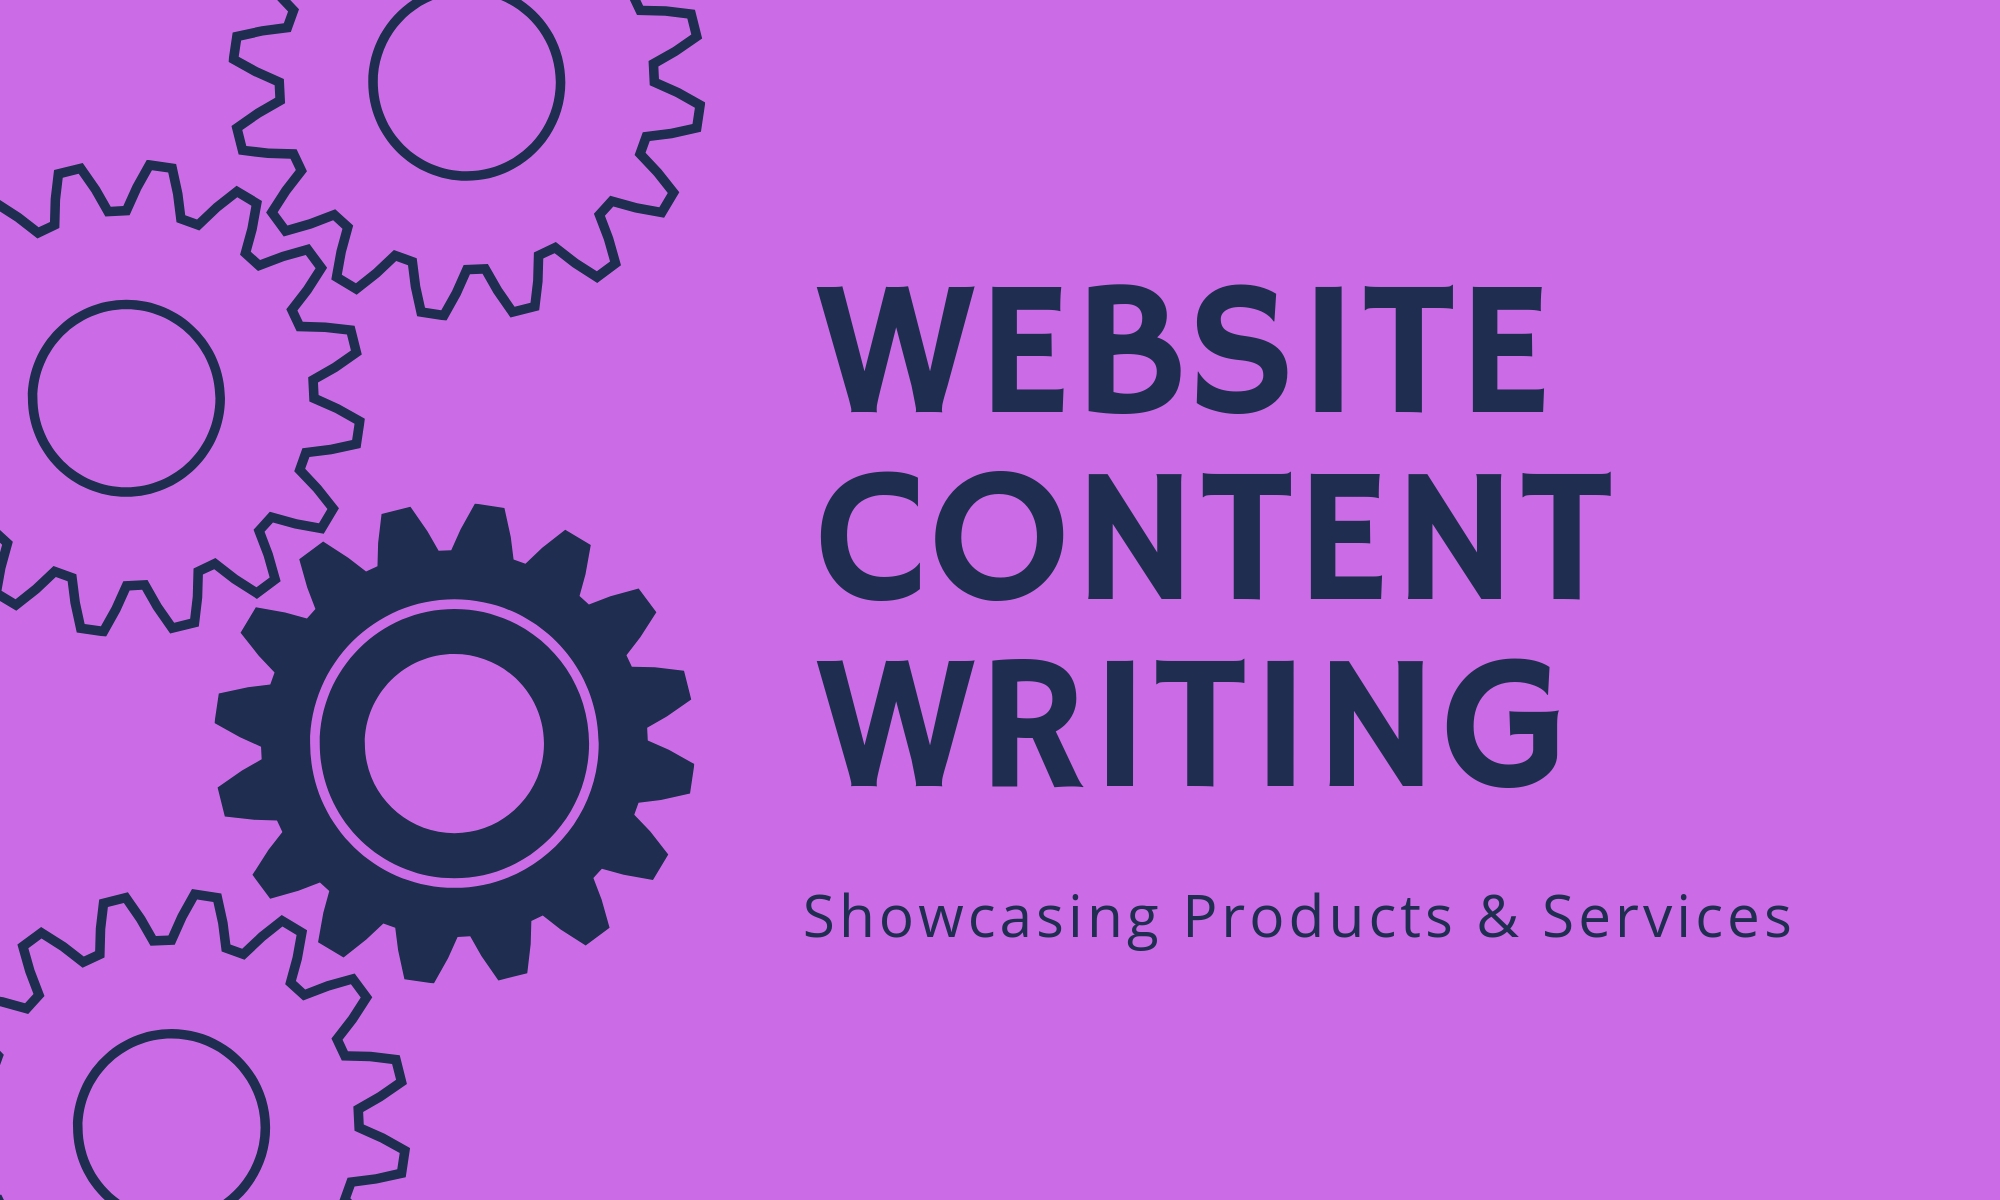 Website Content Writing Service